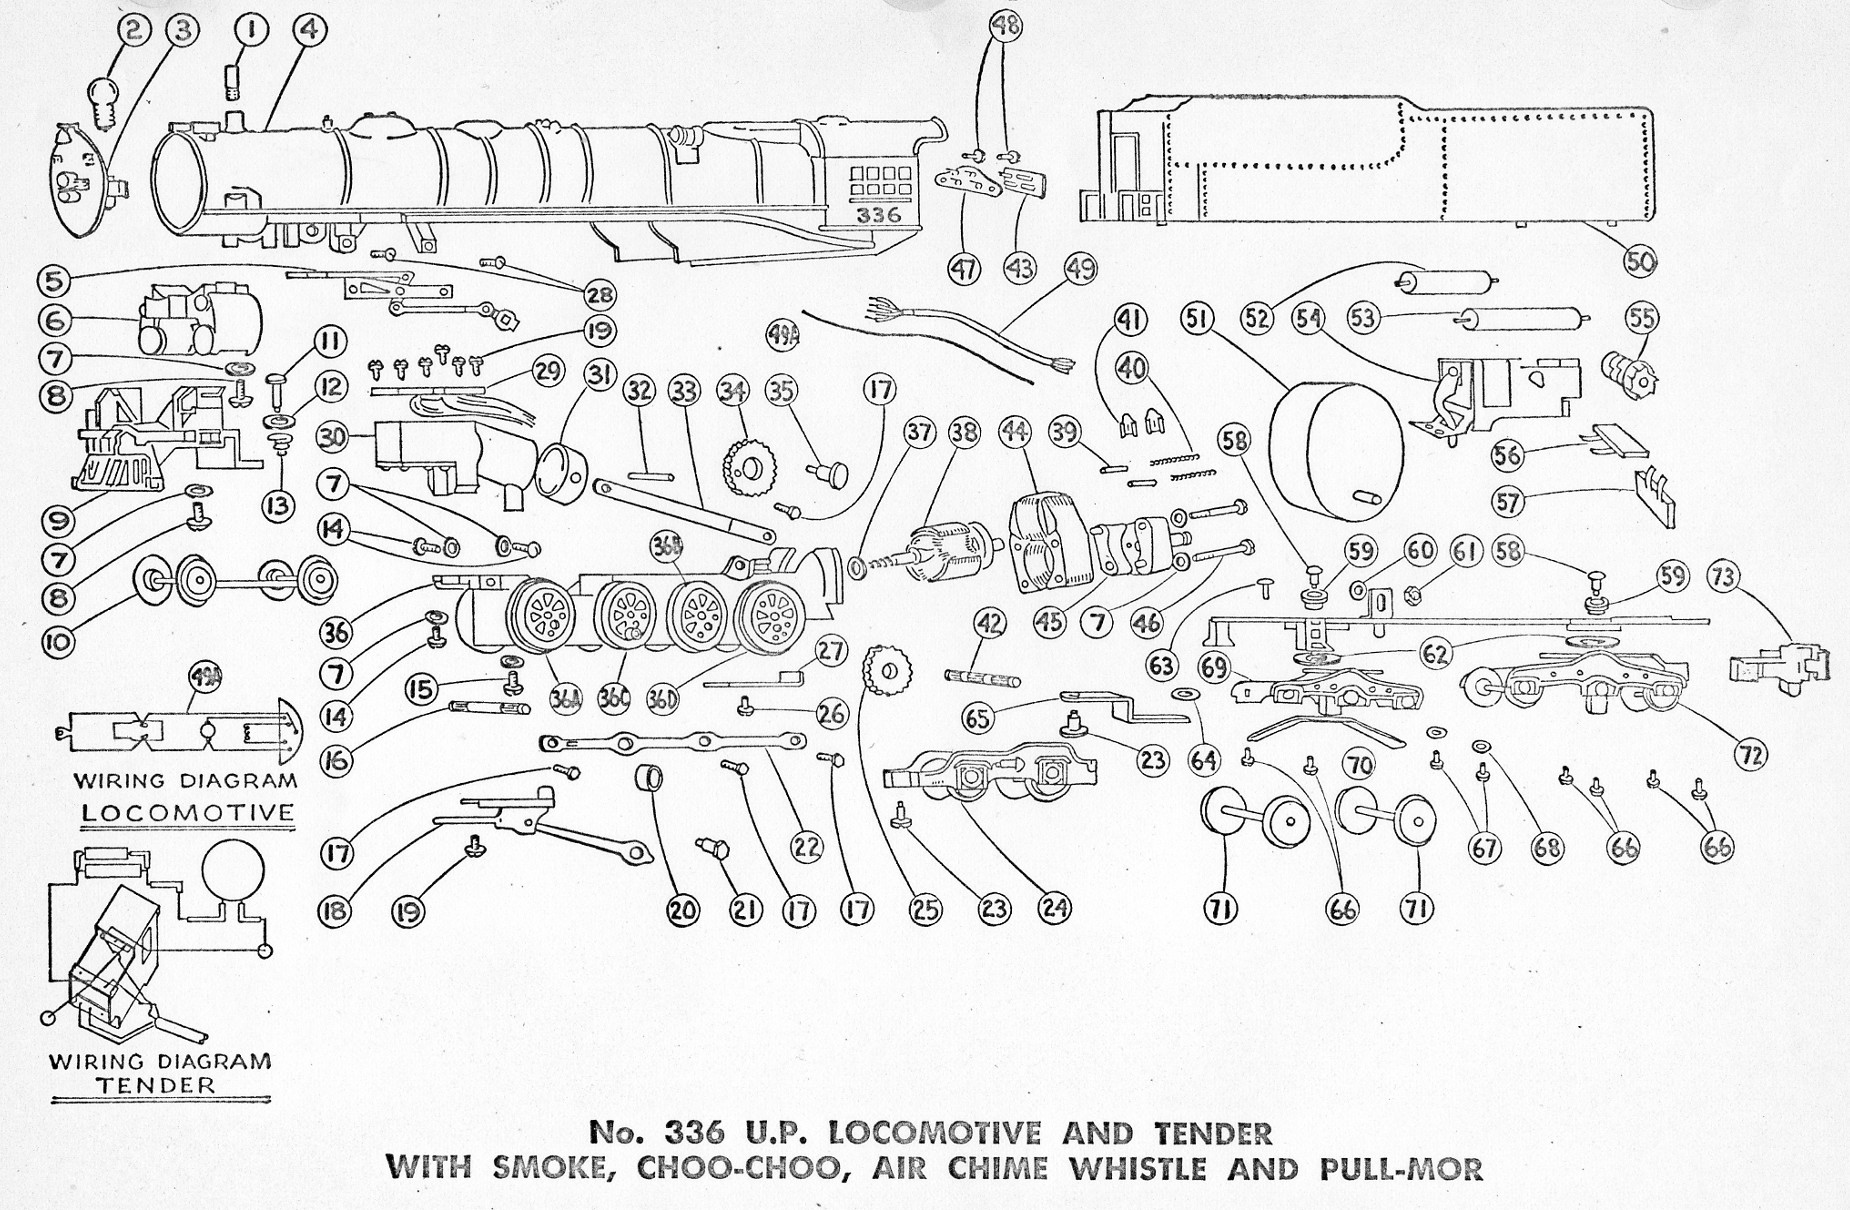 American Flyer Locomotive & Tender 336 Parts List and Diagram - Page 2